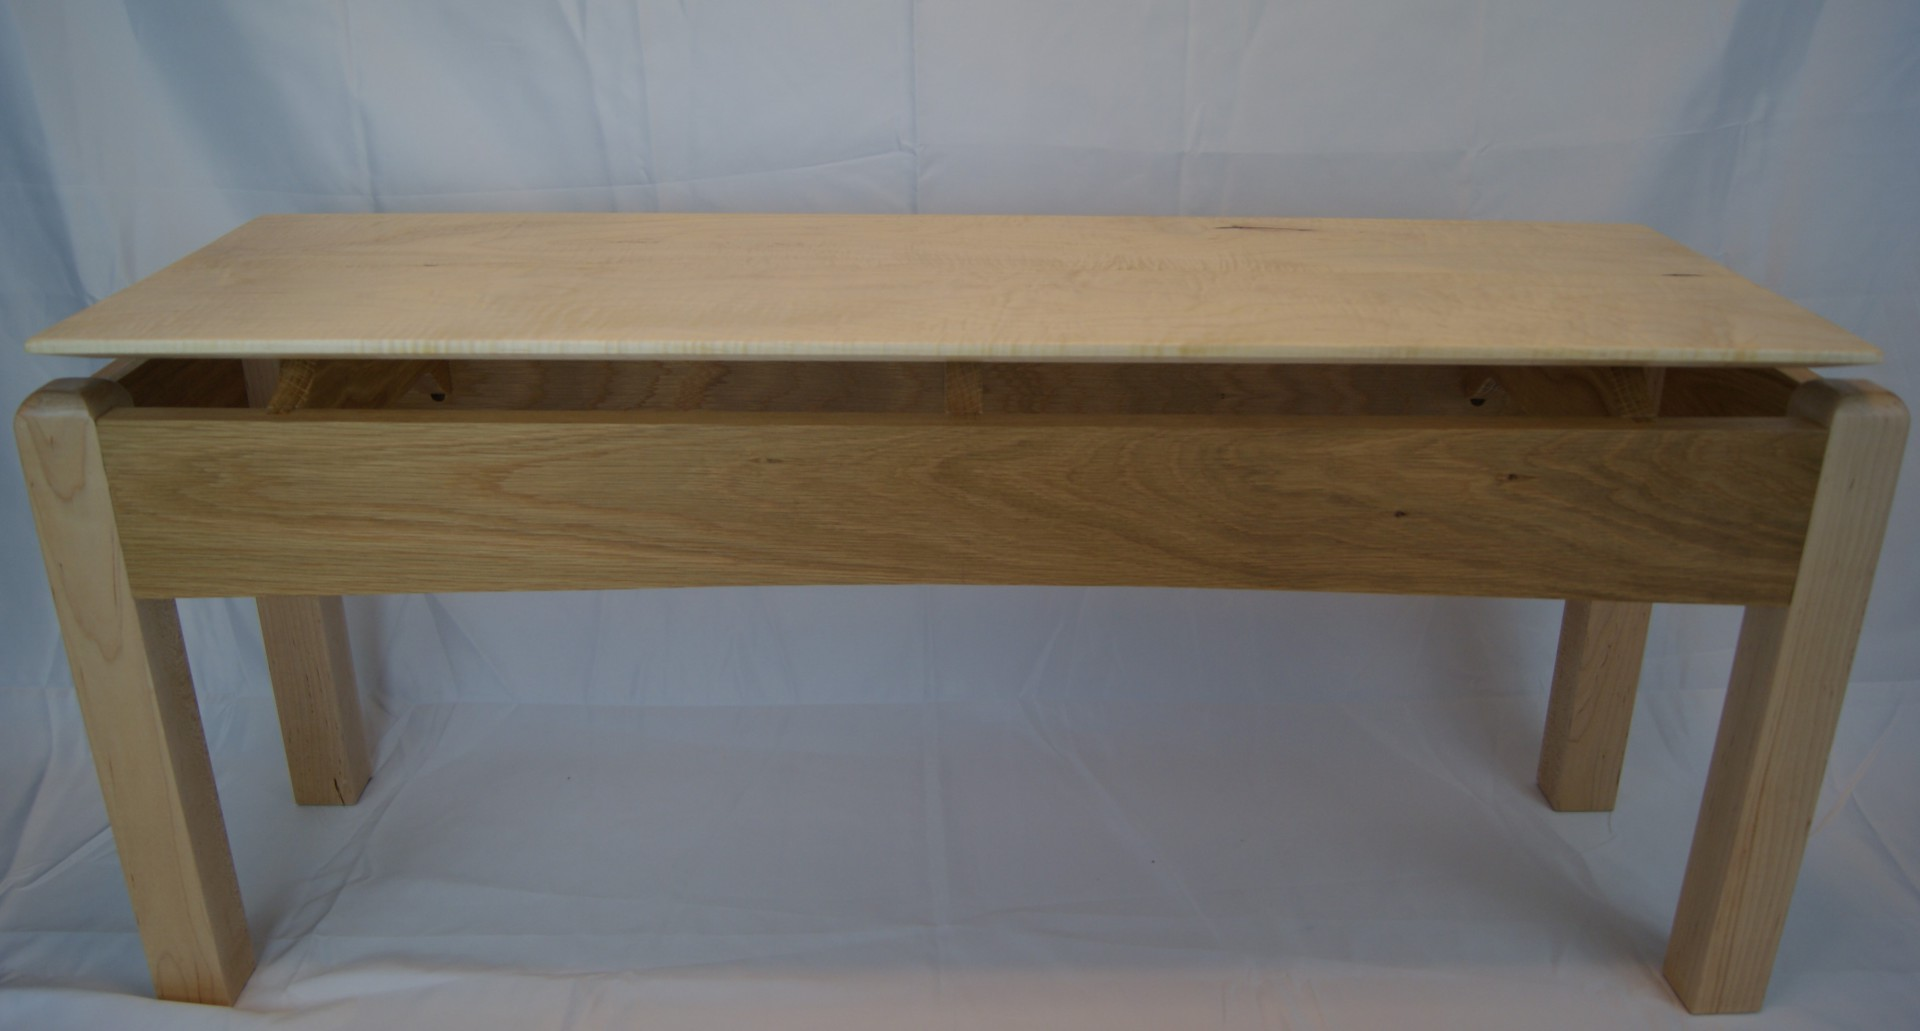 Floating Top Bench